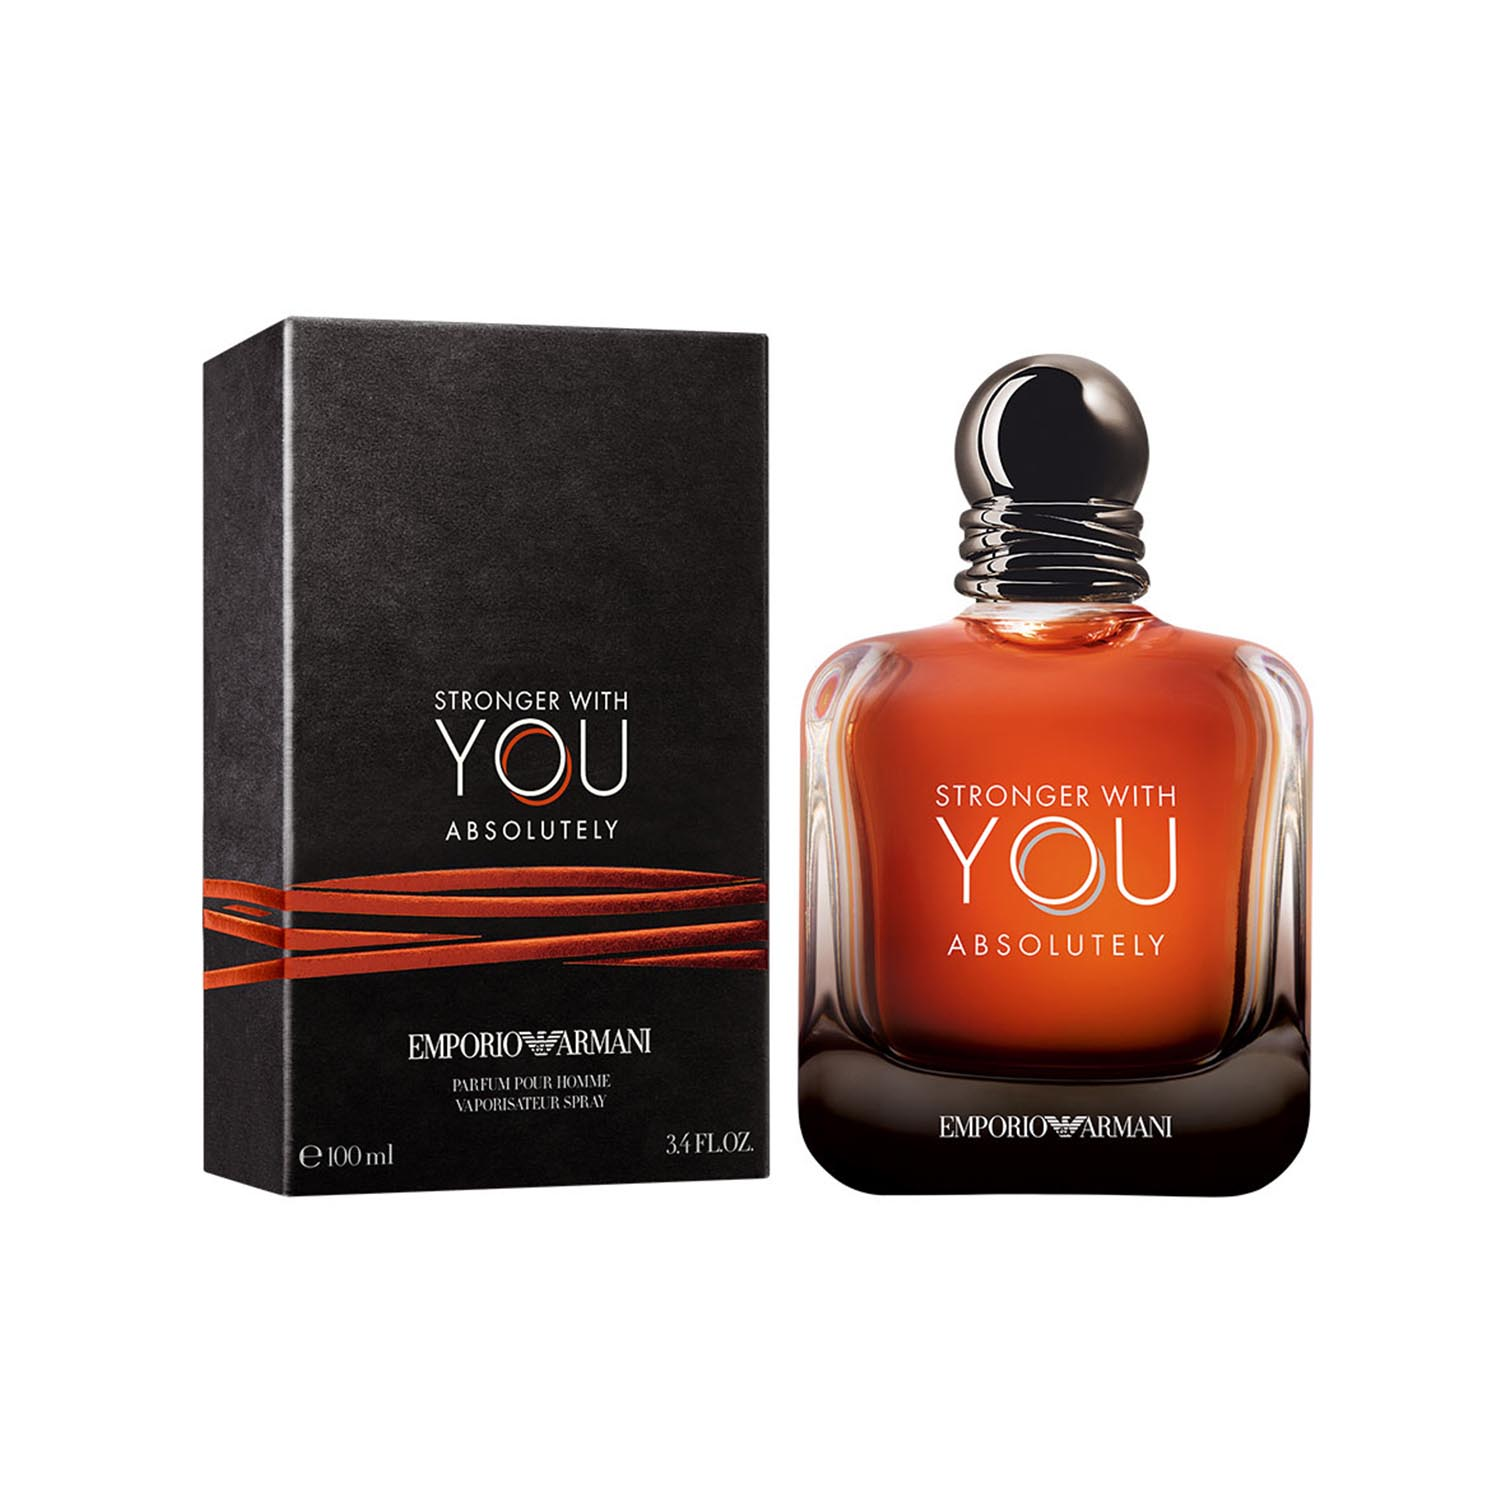 Giorgio armani stronger with you absolutely eau de perfum 1un vaporizador